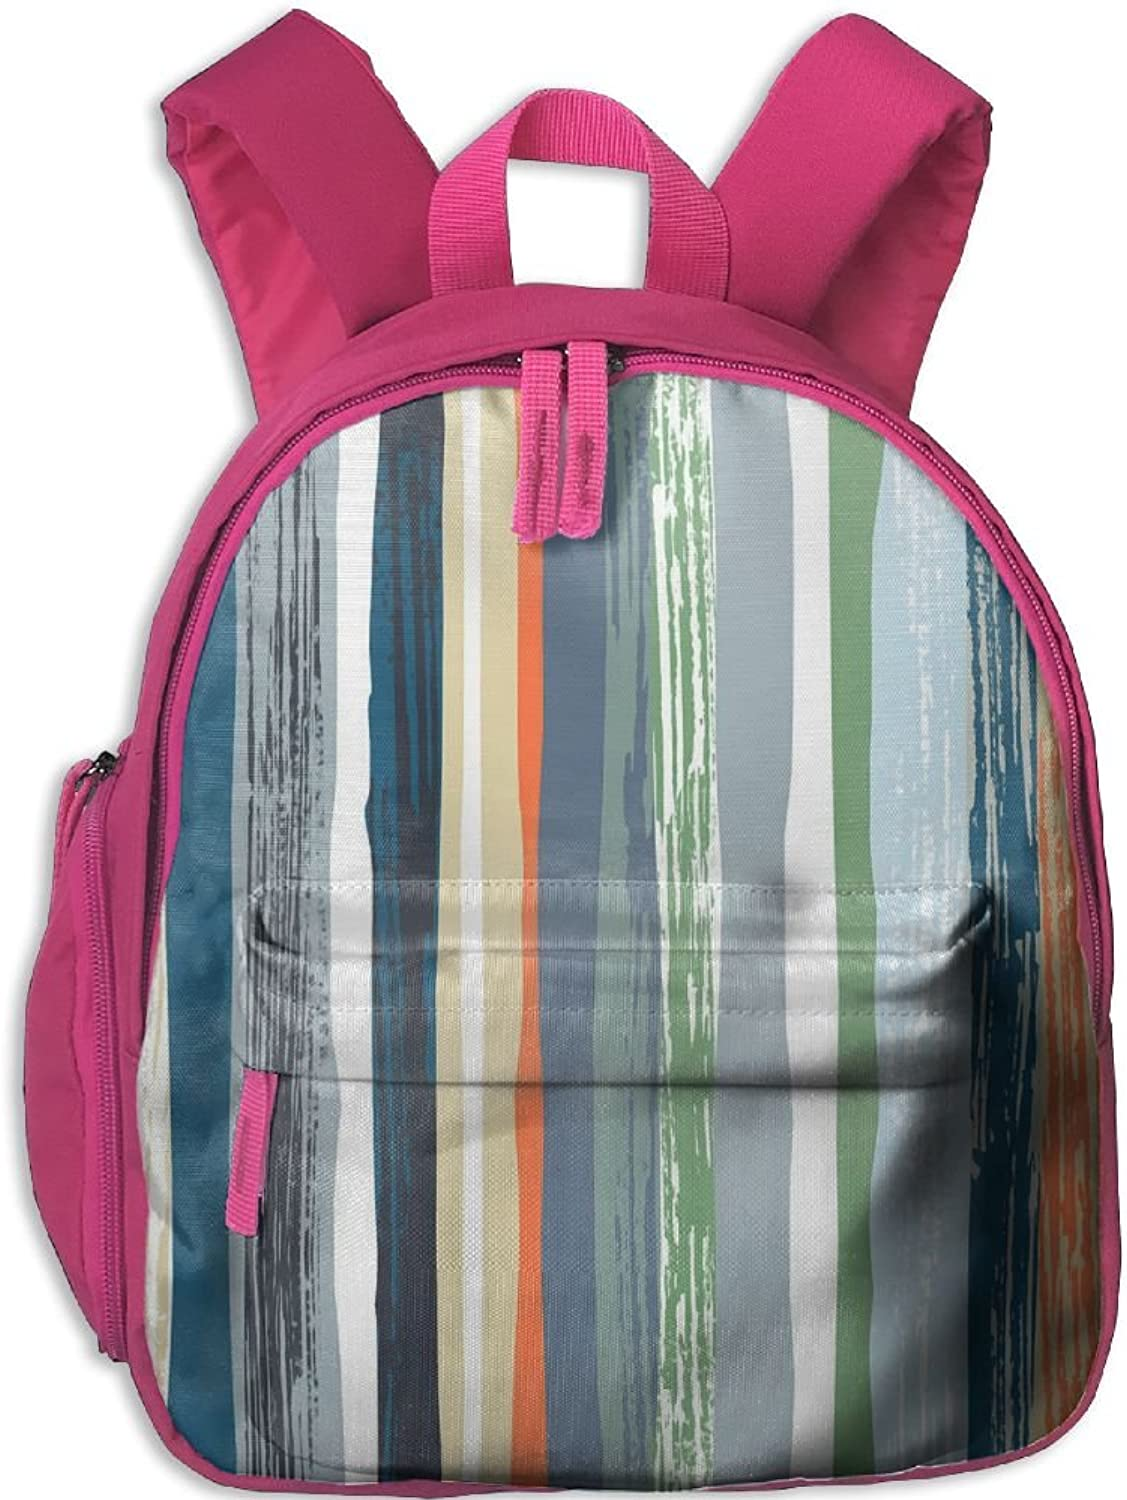 School Bag Retro Watercolor Stripe(9562) With Durable Travel Camping Backpack For Boys And Girls